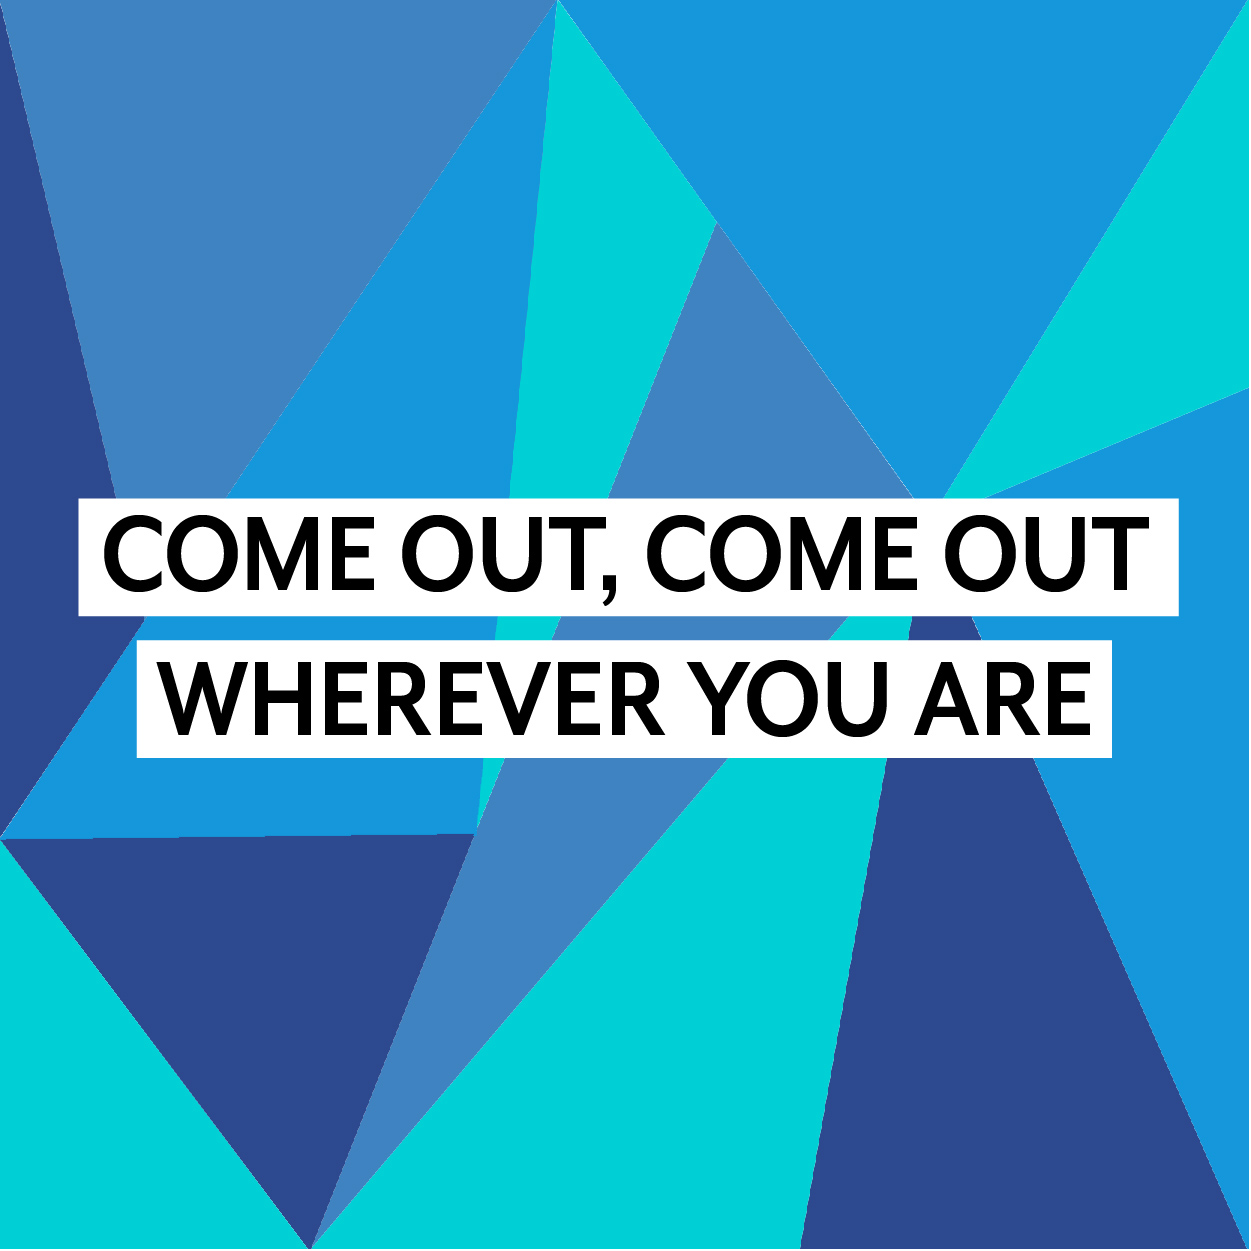 Come Out Come Out-01.jpg